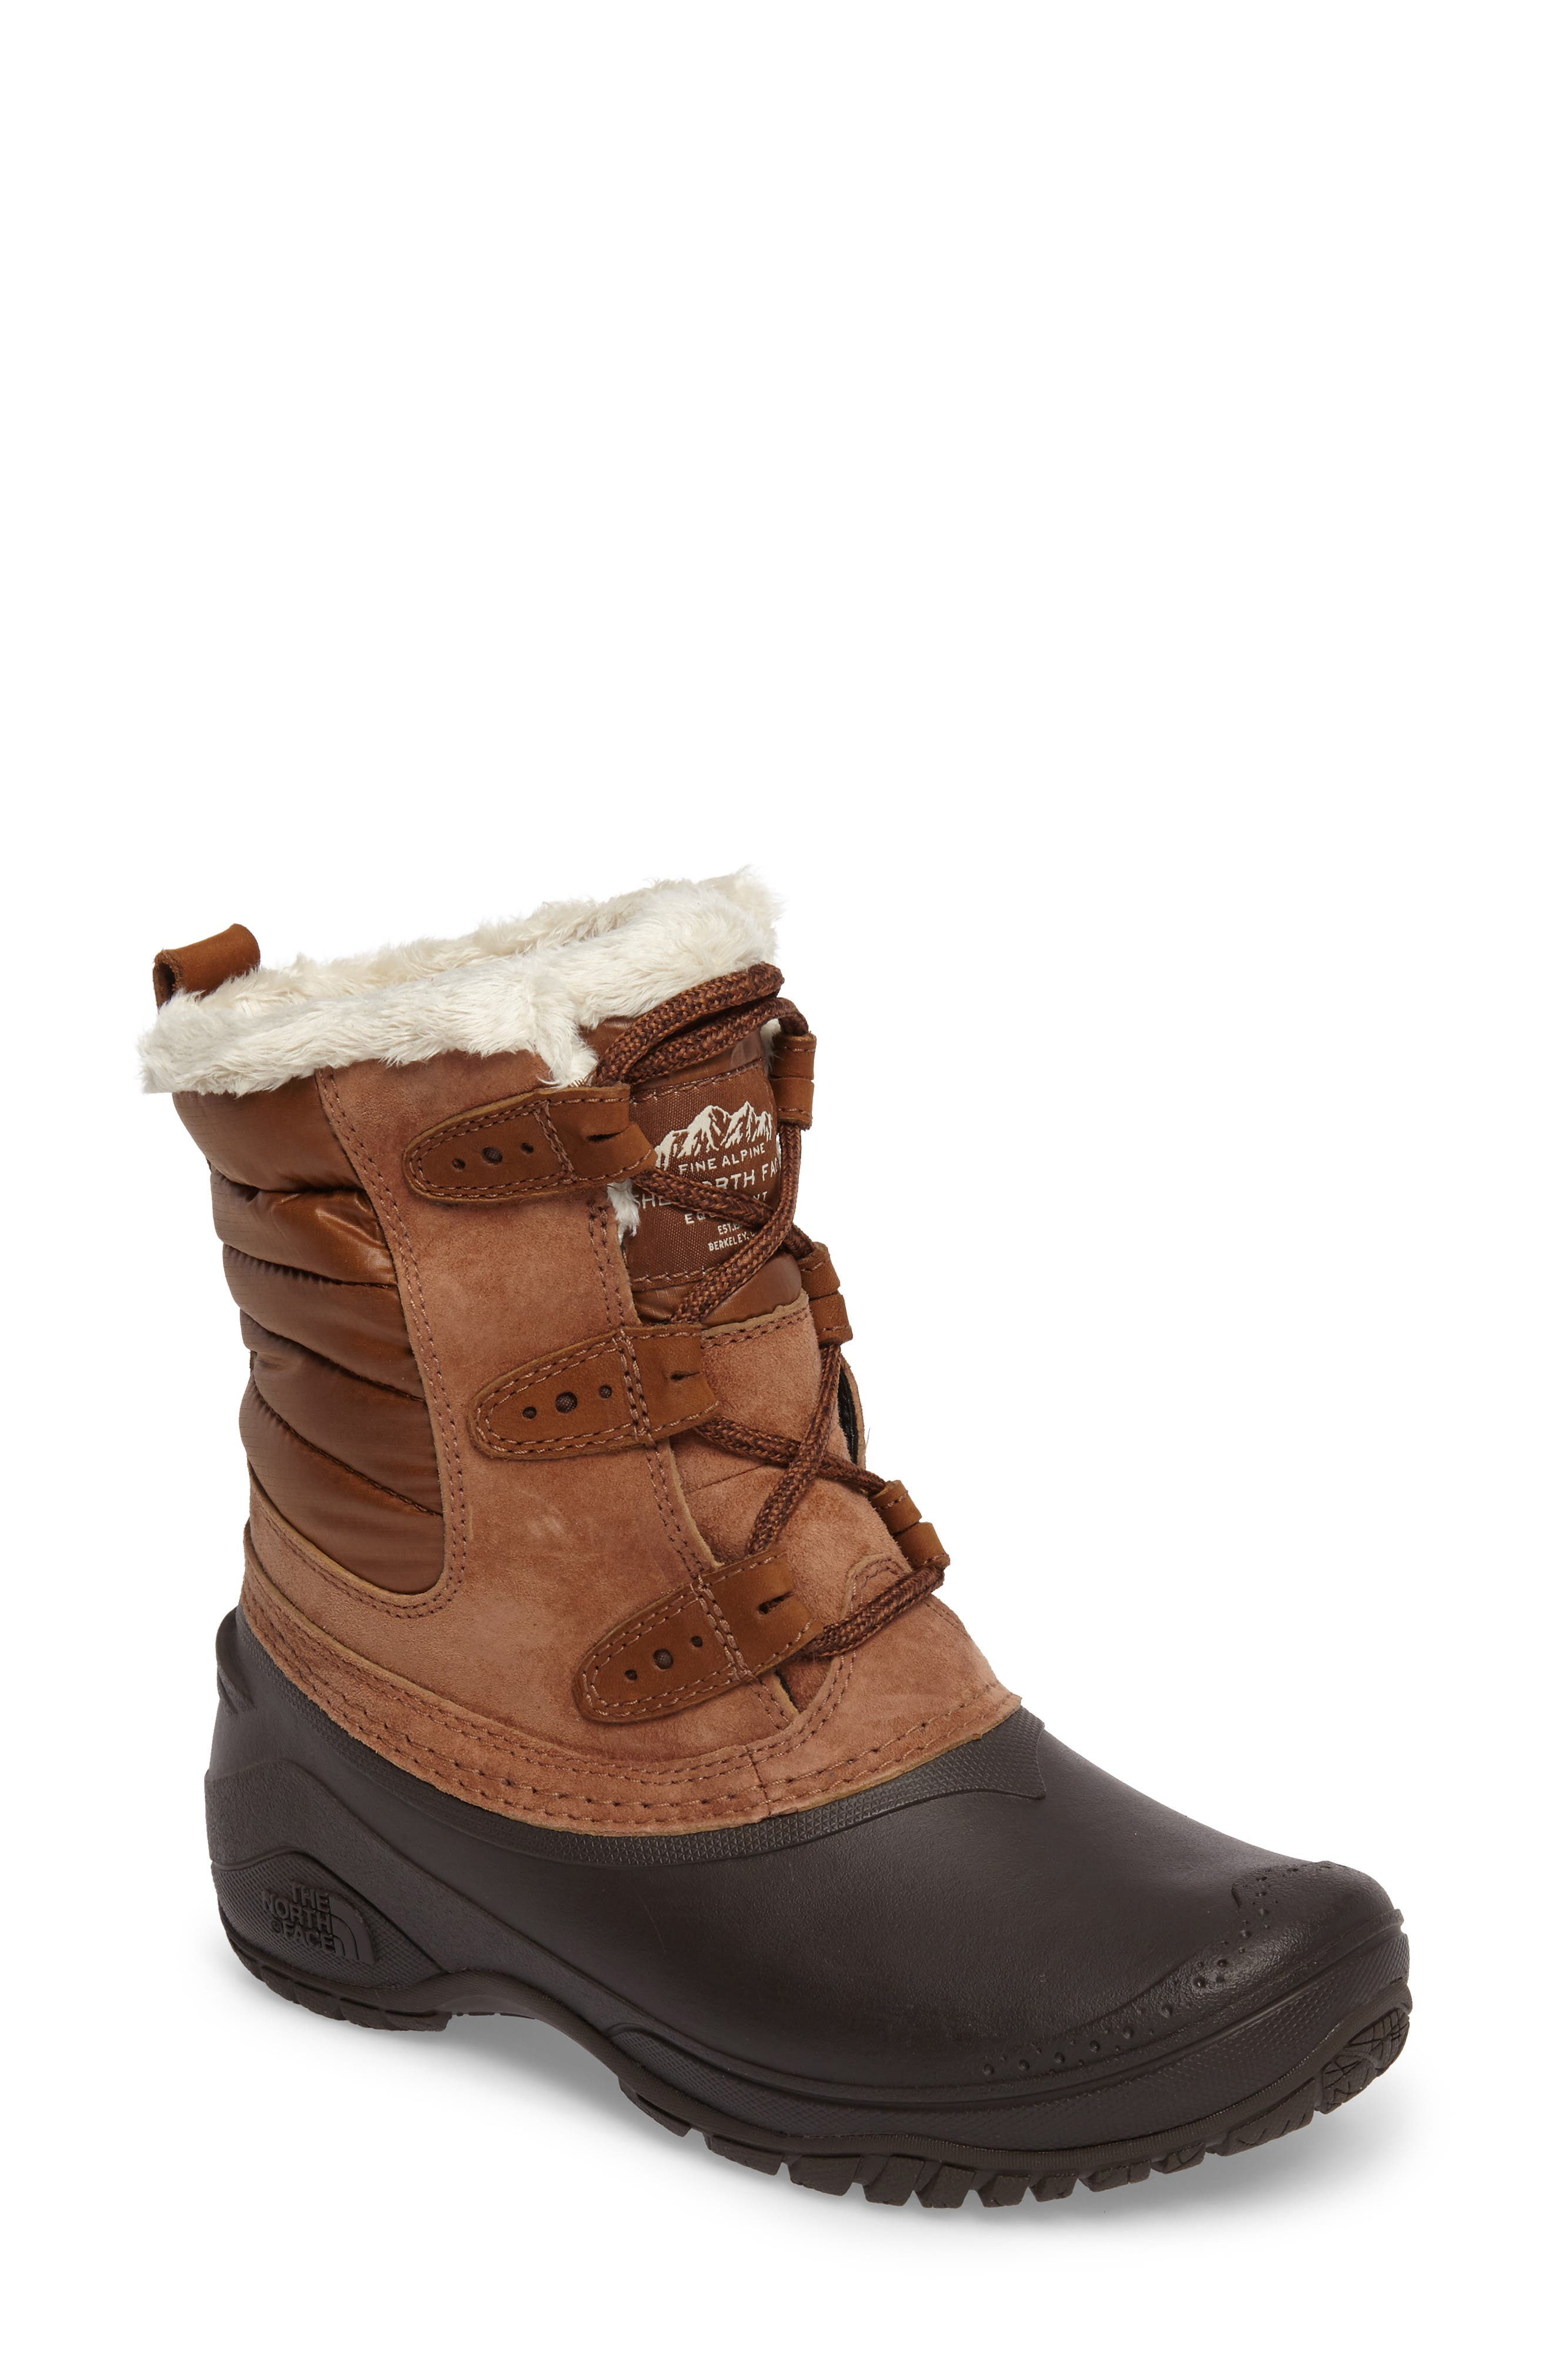 Shellista II Waterproof Boot,                             Main thumbnail 1, color,                             Dachshund Brown/ Vintage White